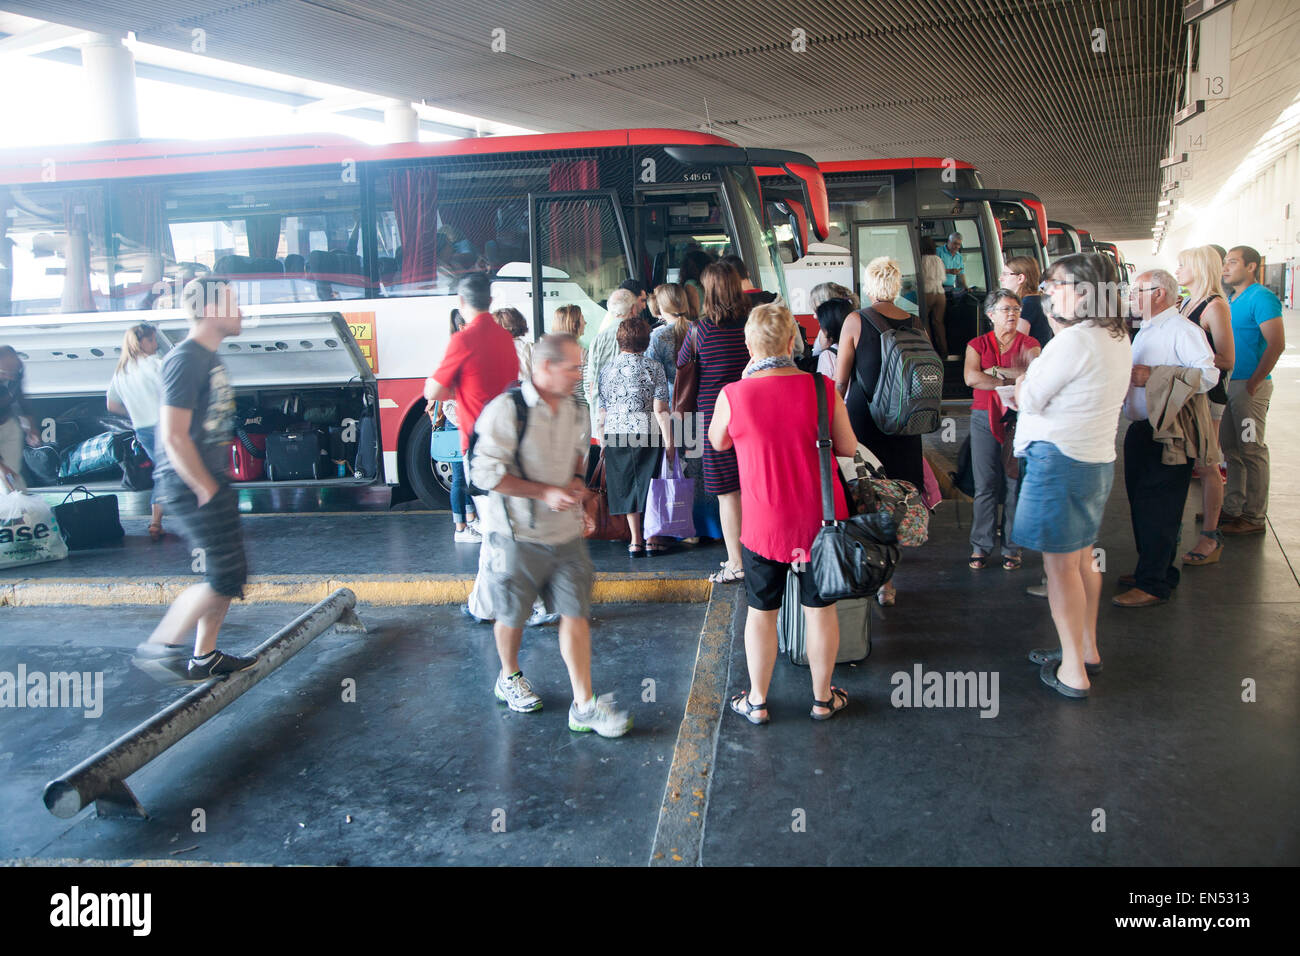 Passengers boarding long distance coach at Granada bus station, Spain - Stock Image